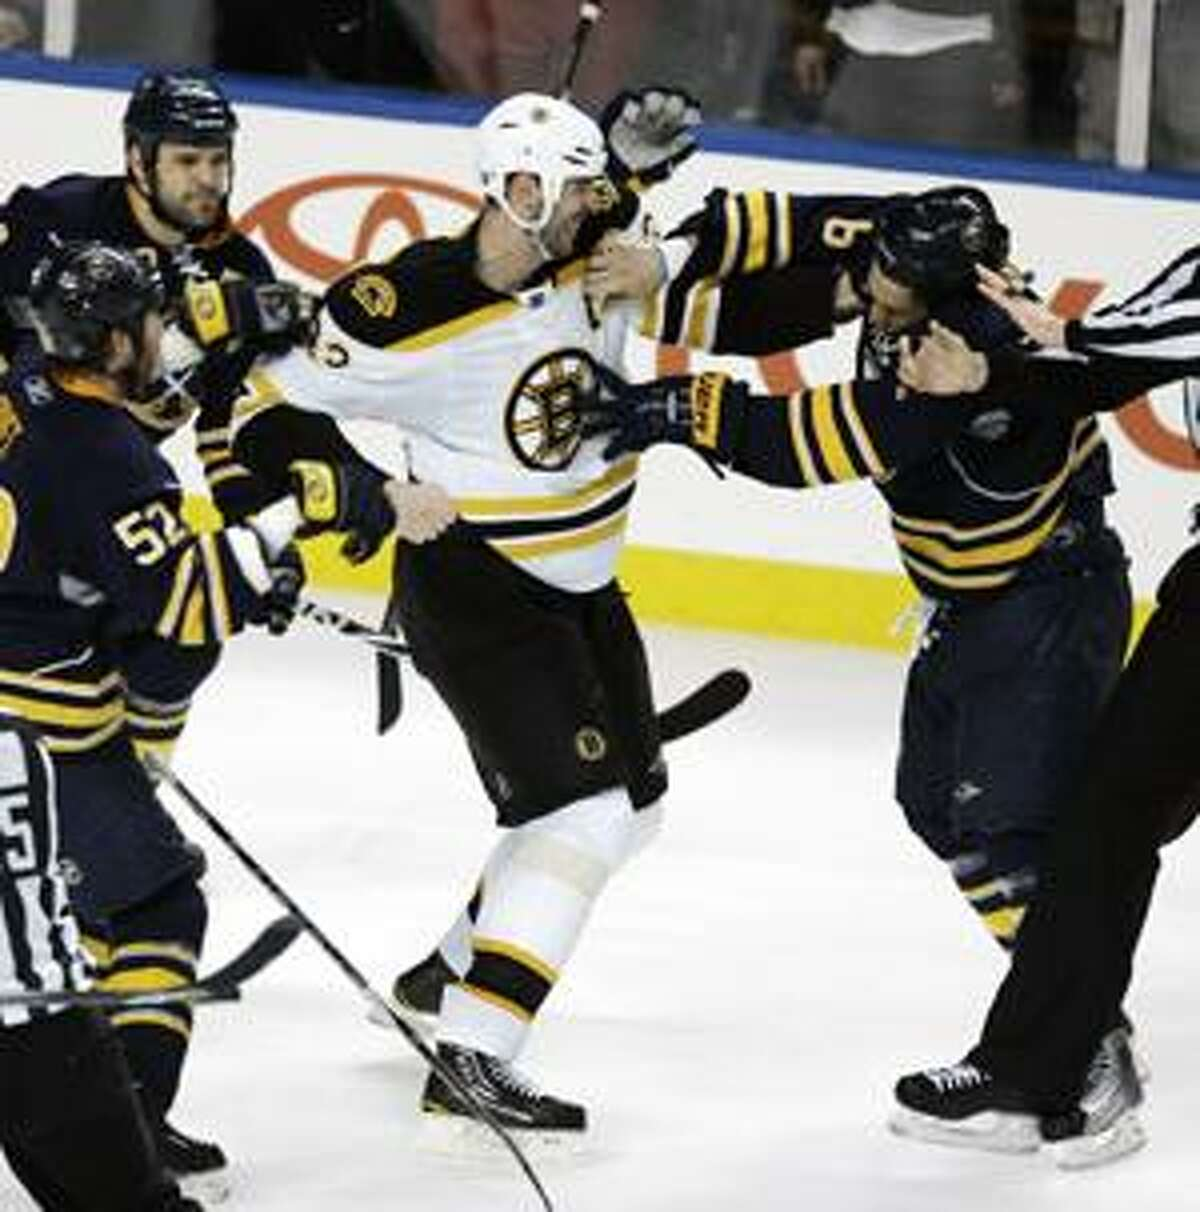 AP Buffalo's Cody McCormick, right, fights with Boston's Zdeno Chara (33)during the third period of a first-round NHL playoff game in Buffalo, N.Y., Friday. The Sabres won 4-1 to force Game 6 in the series.